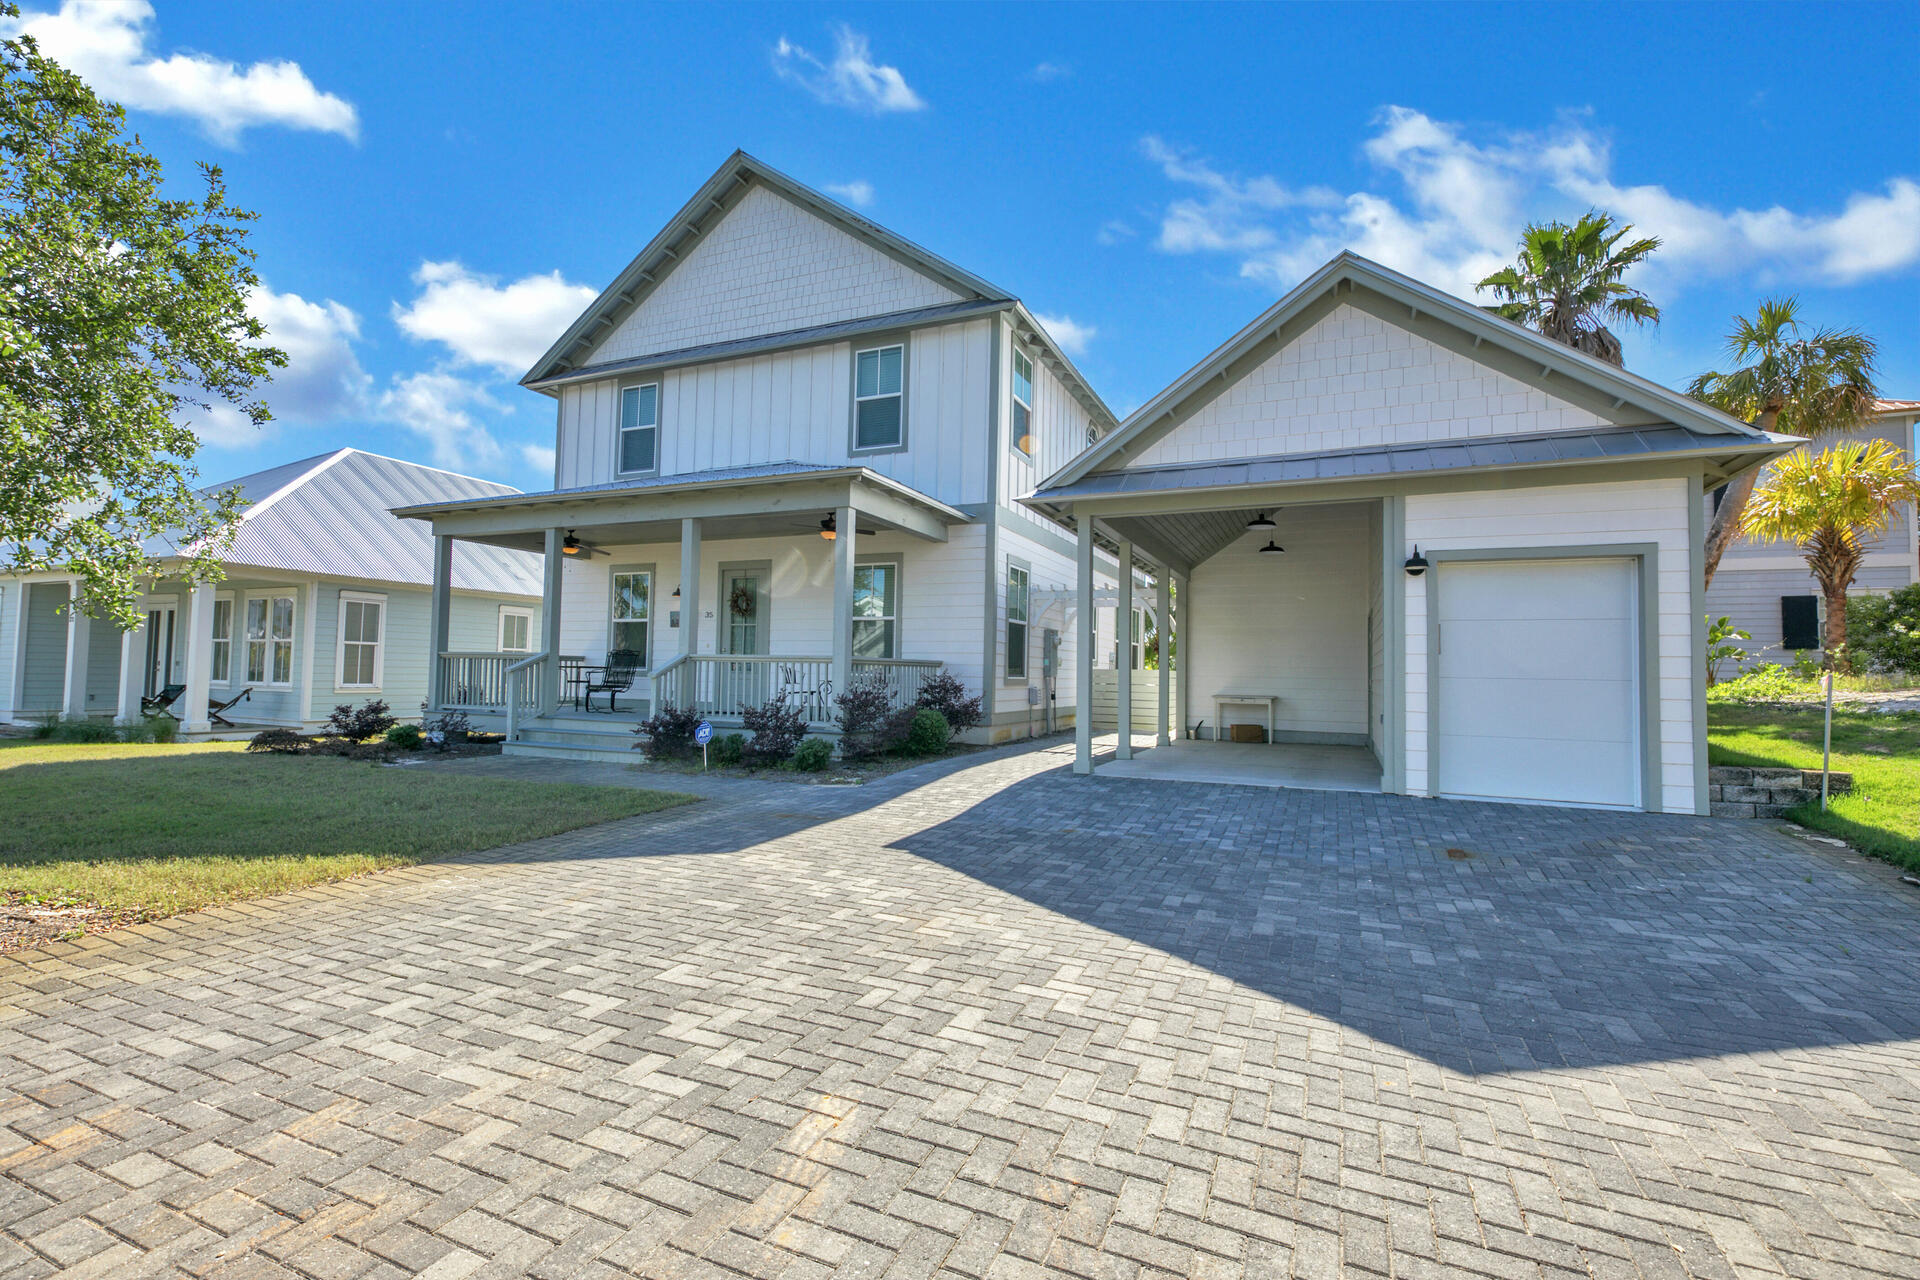 A 4 Bedroom 3 Bedroom Village At Blue Mountain Beach Home